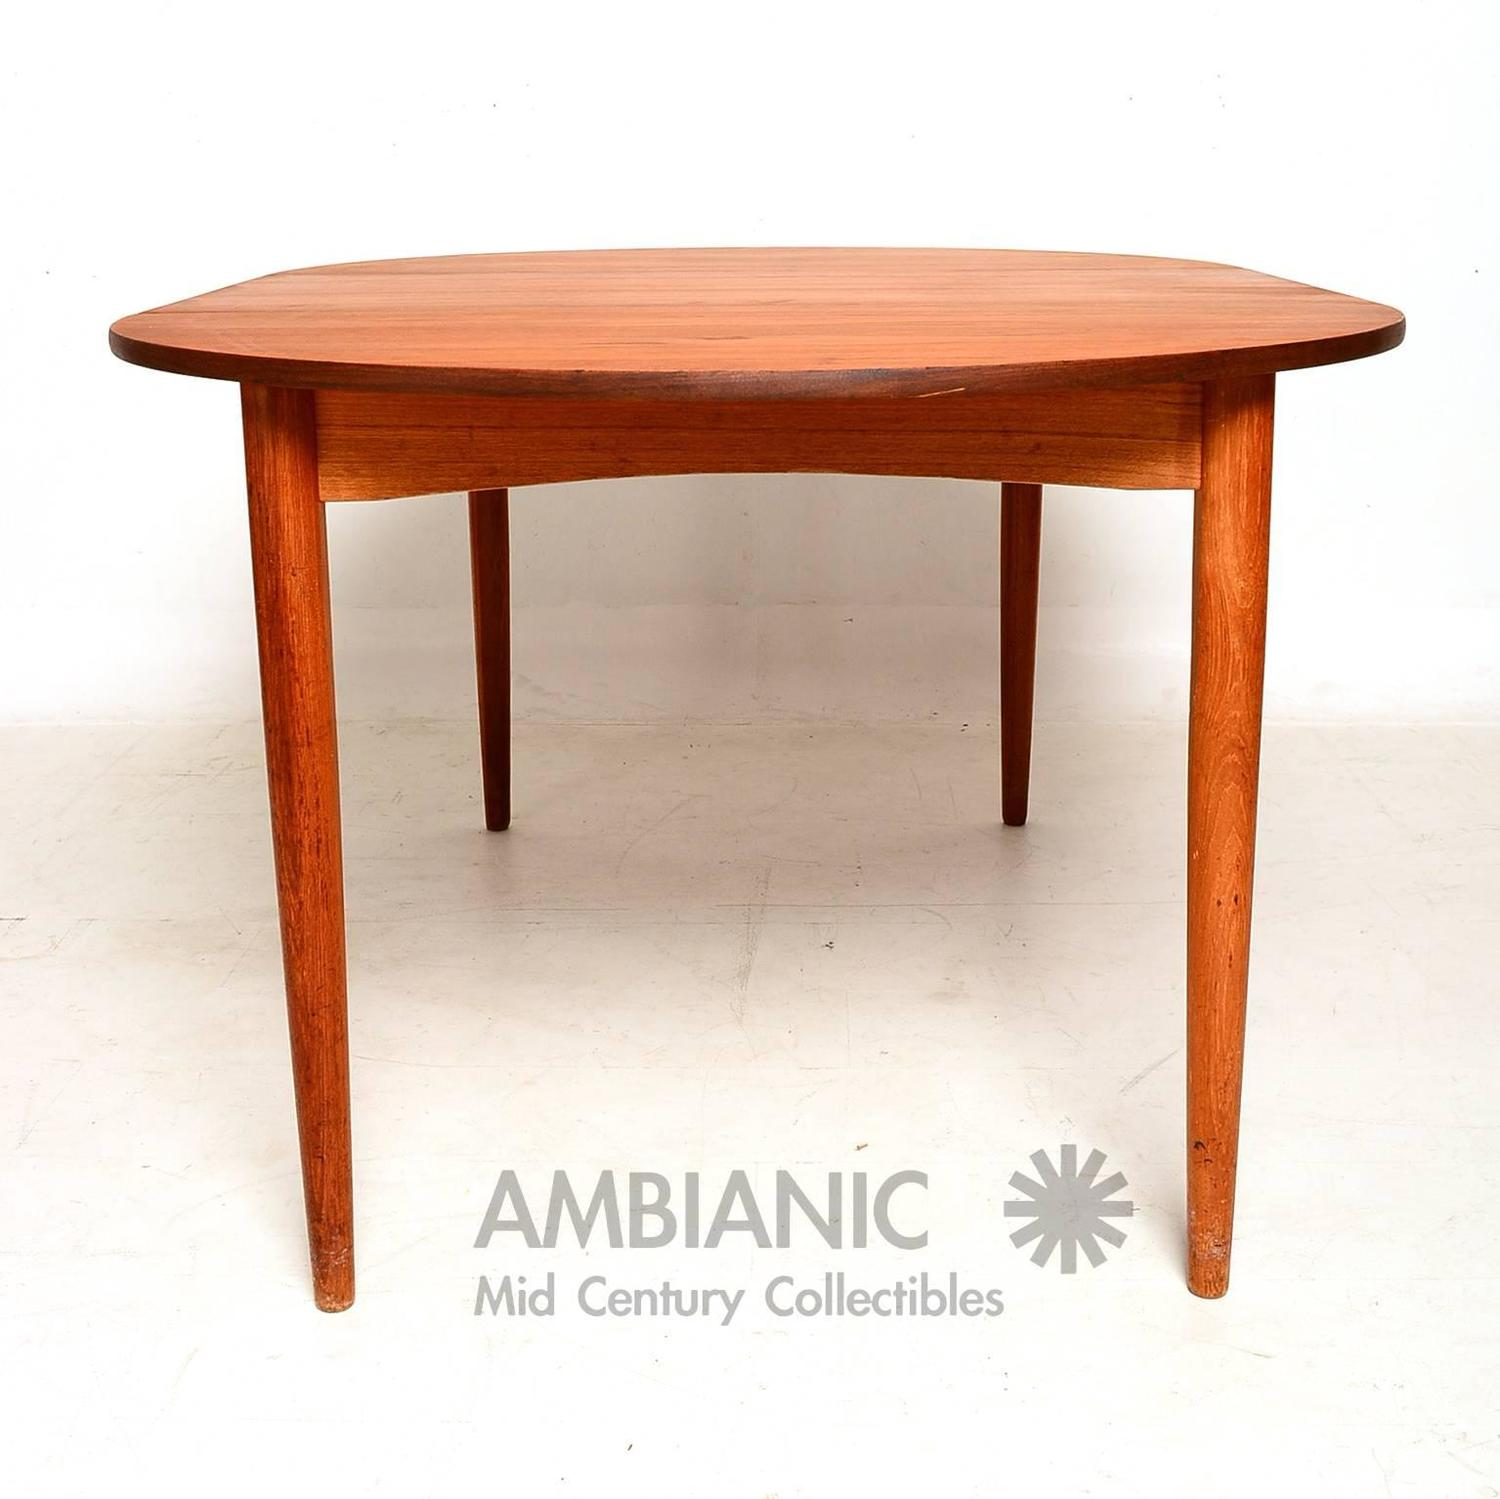 danish modern teak round oval dining table for sale at 1stdibs